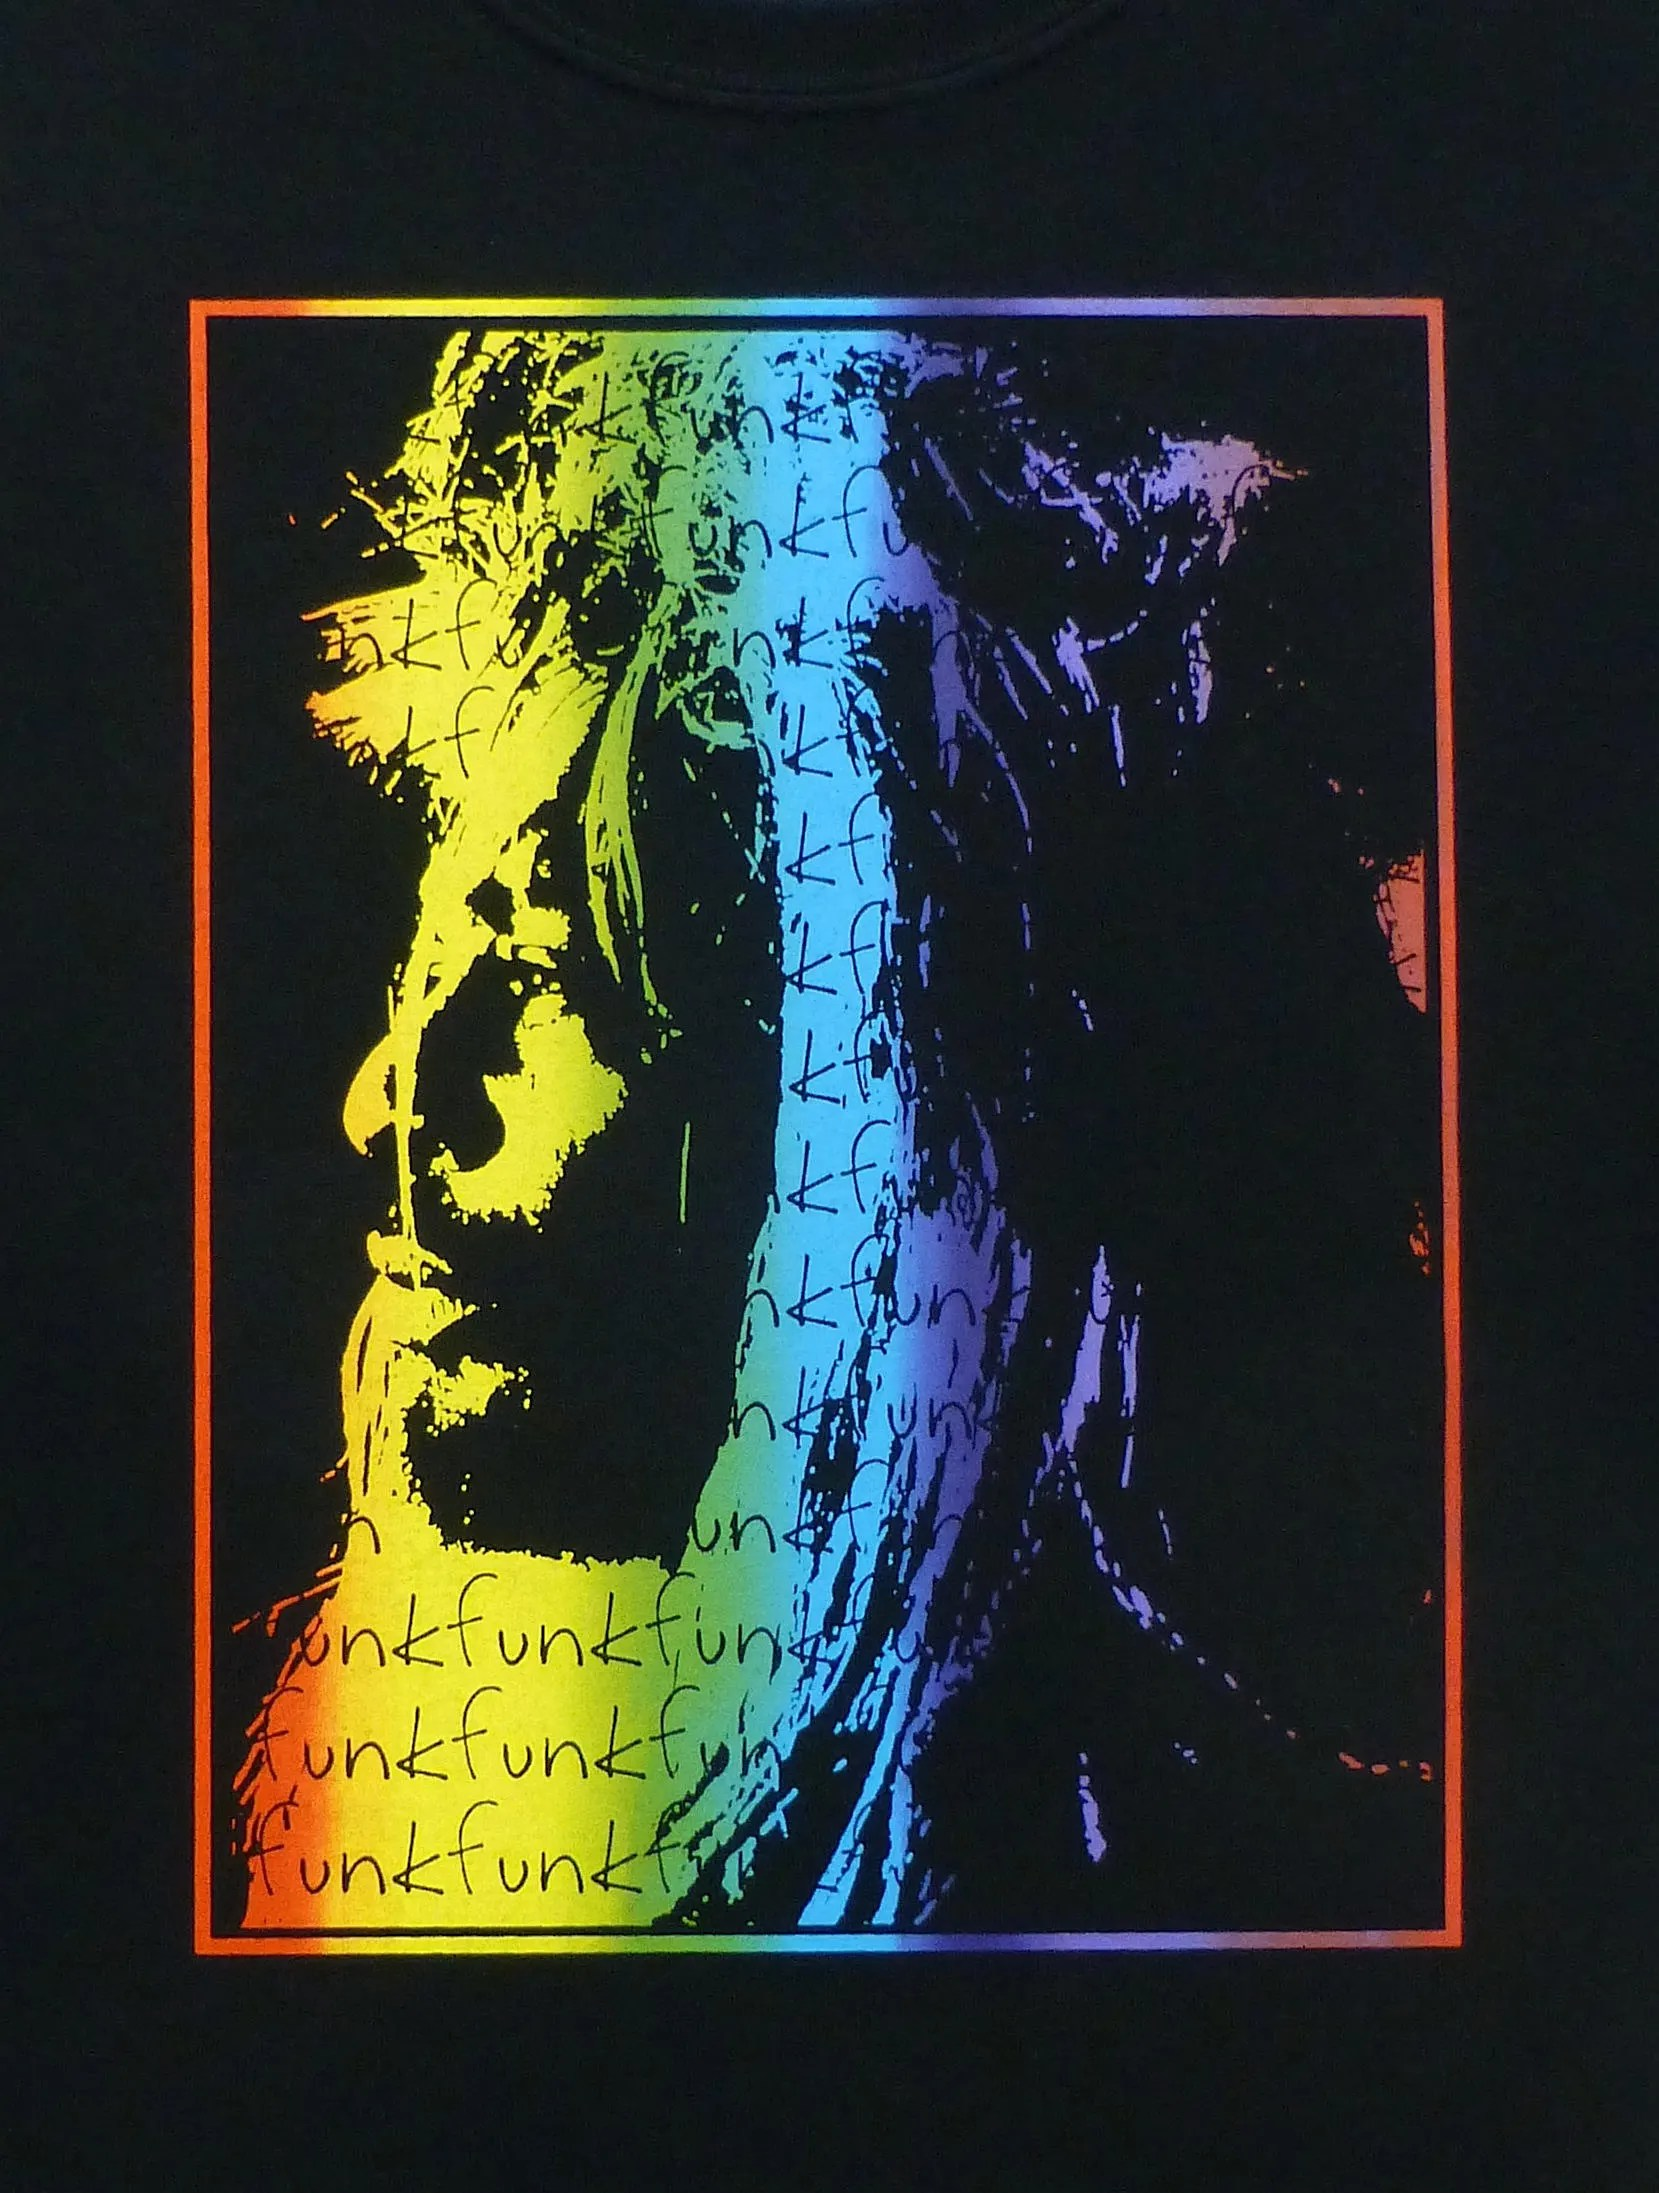 Xxxl Poster Funkadelic T Shirt New Xxl Or Xxxl Clinton Request Size In Message